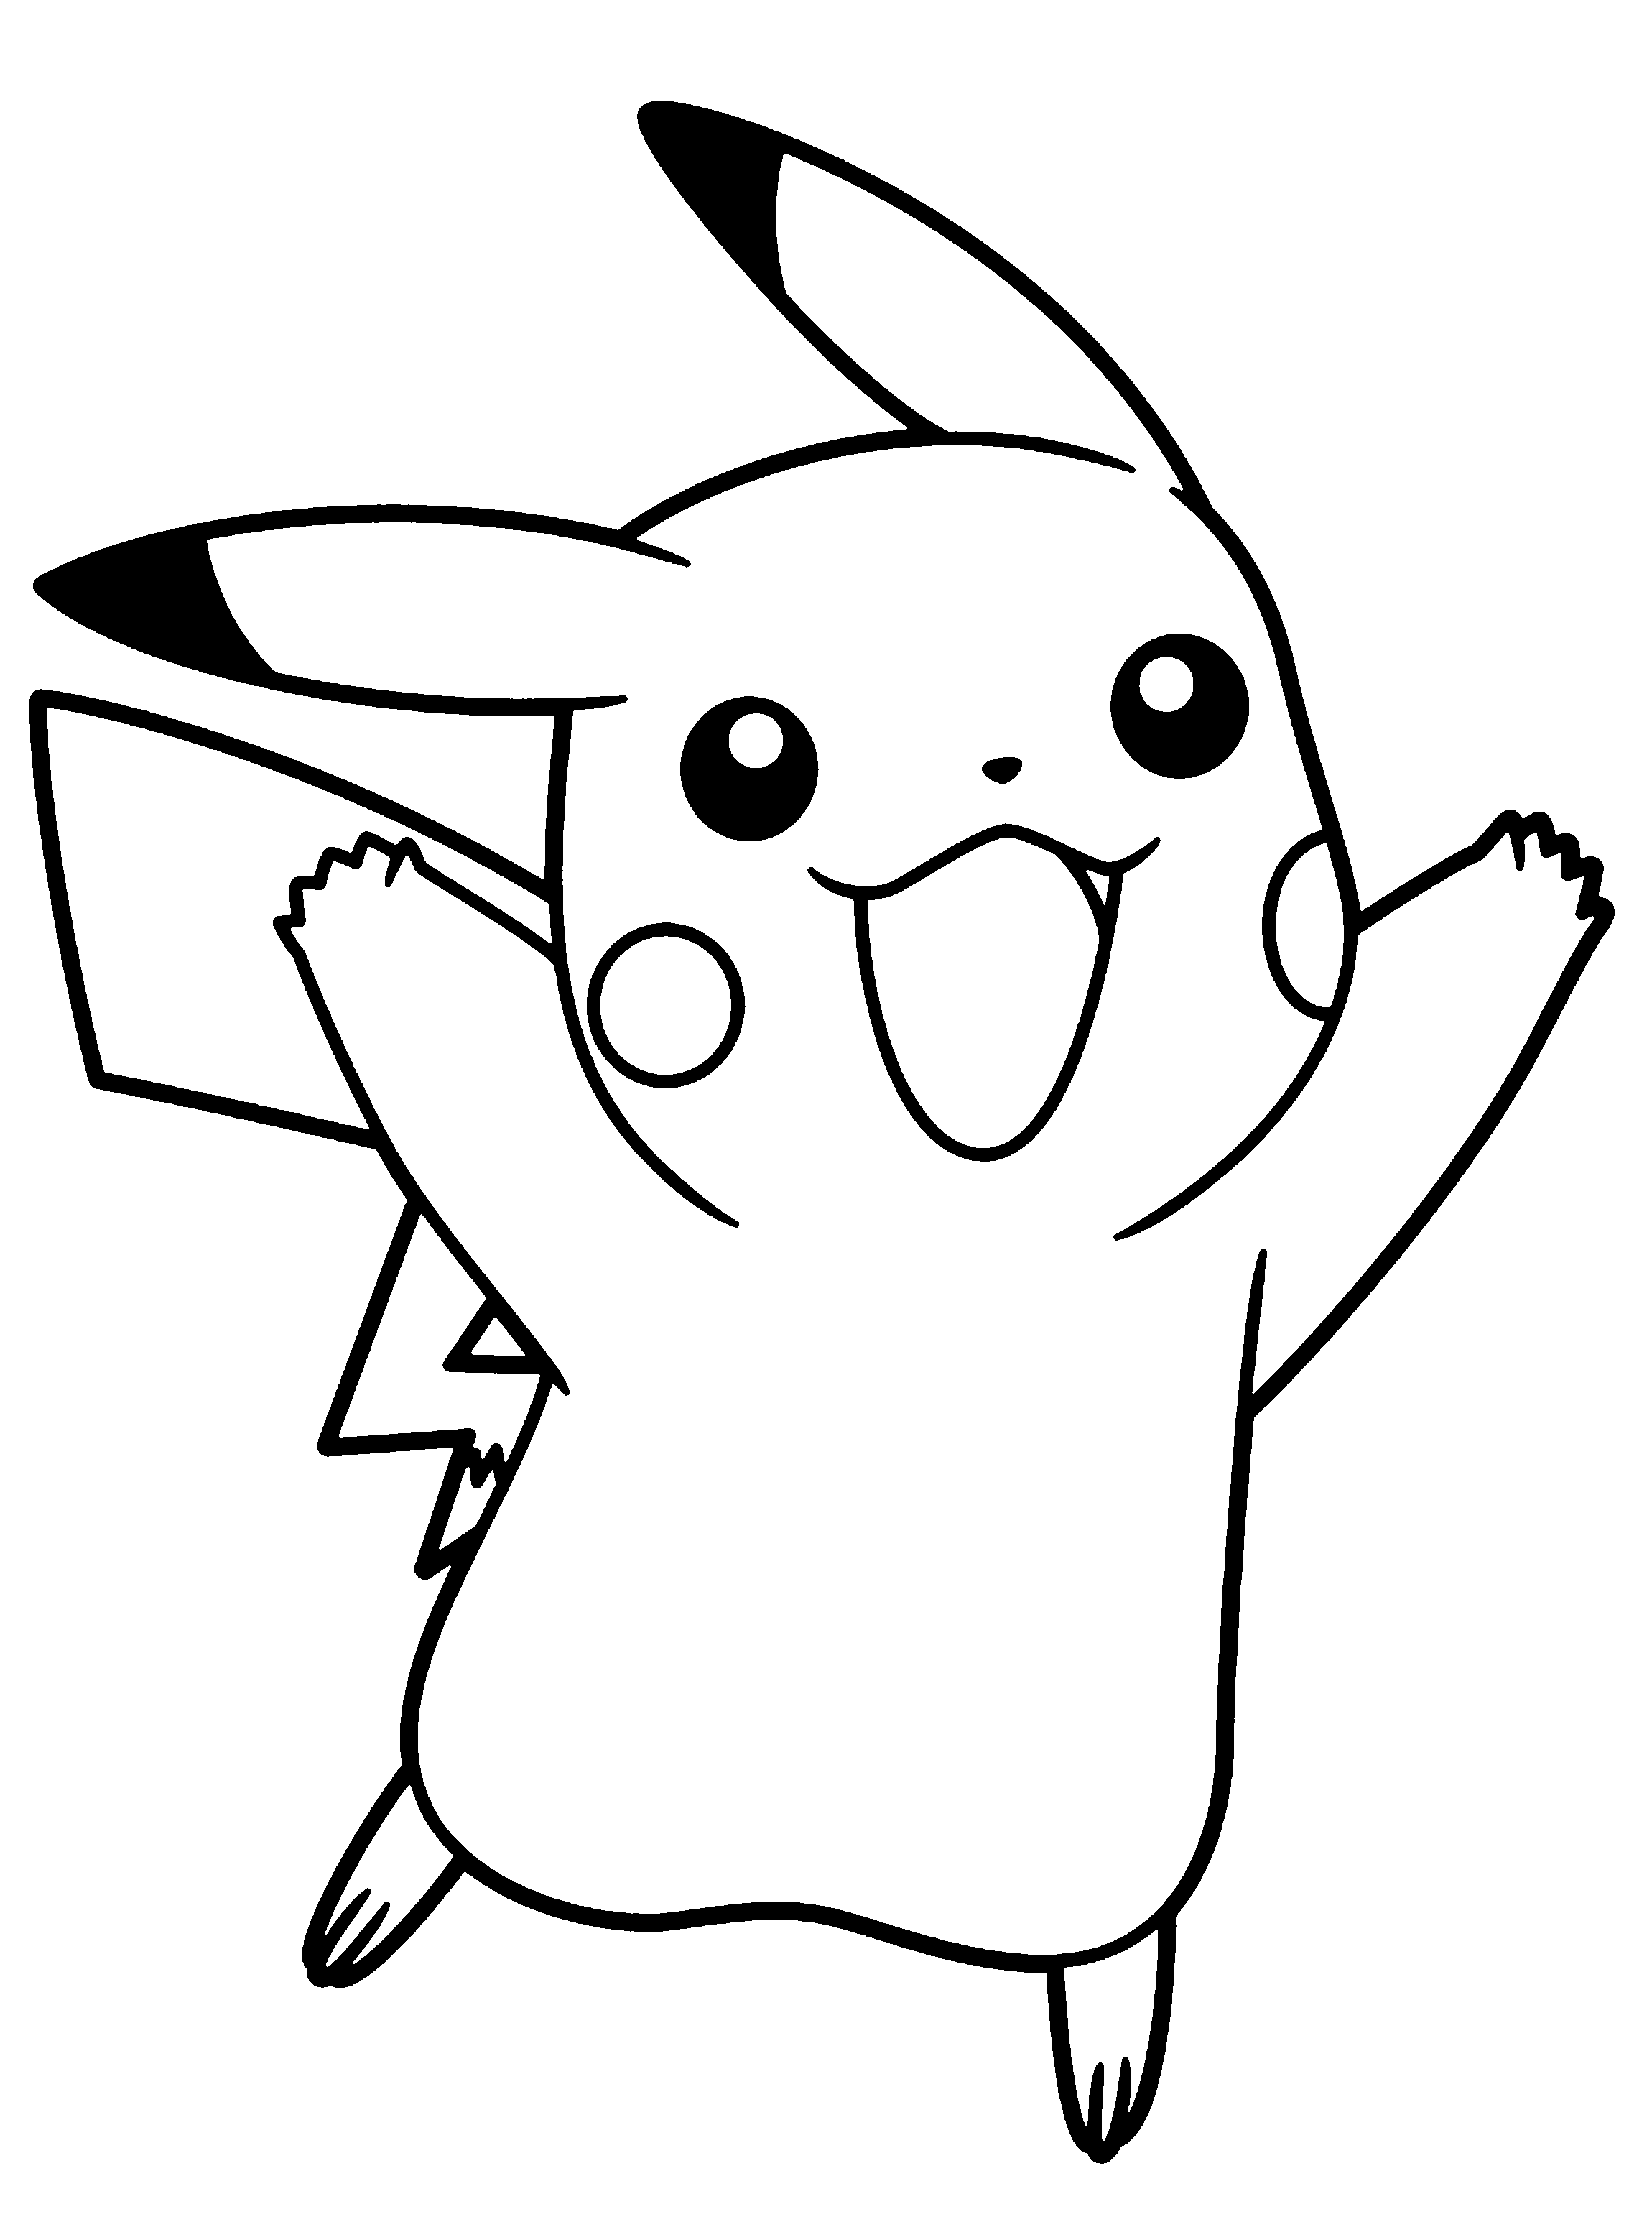 2300x3100 Pikachu Coloring Pages To Download And Print For Free